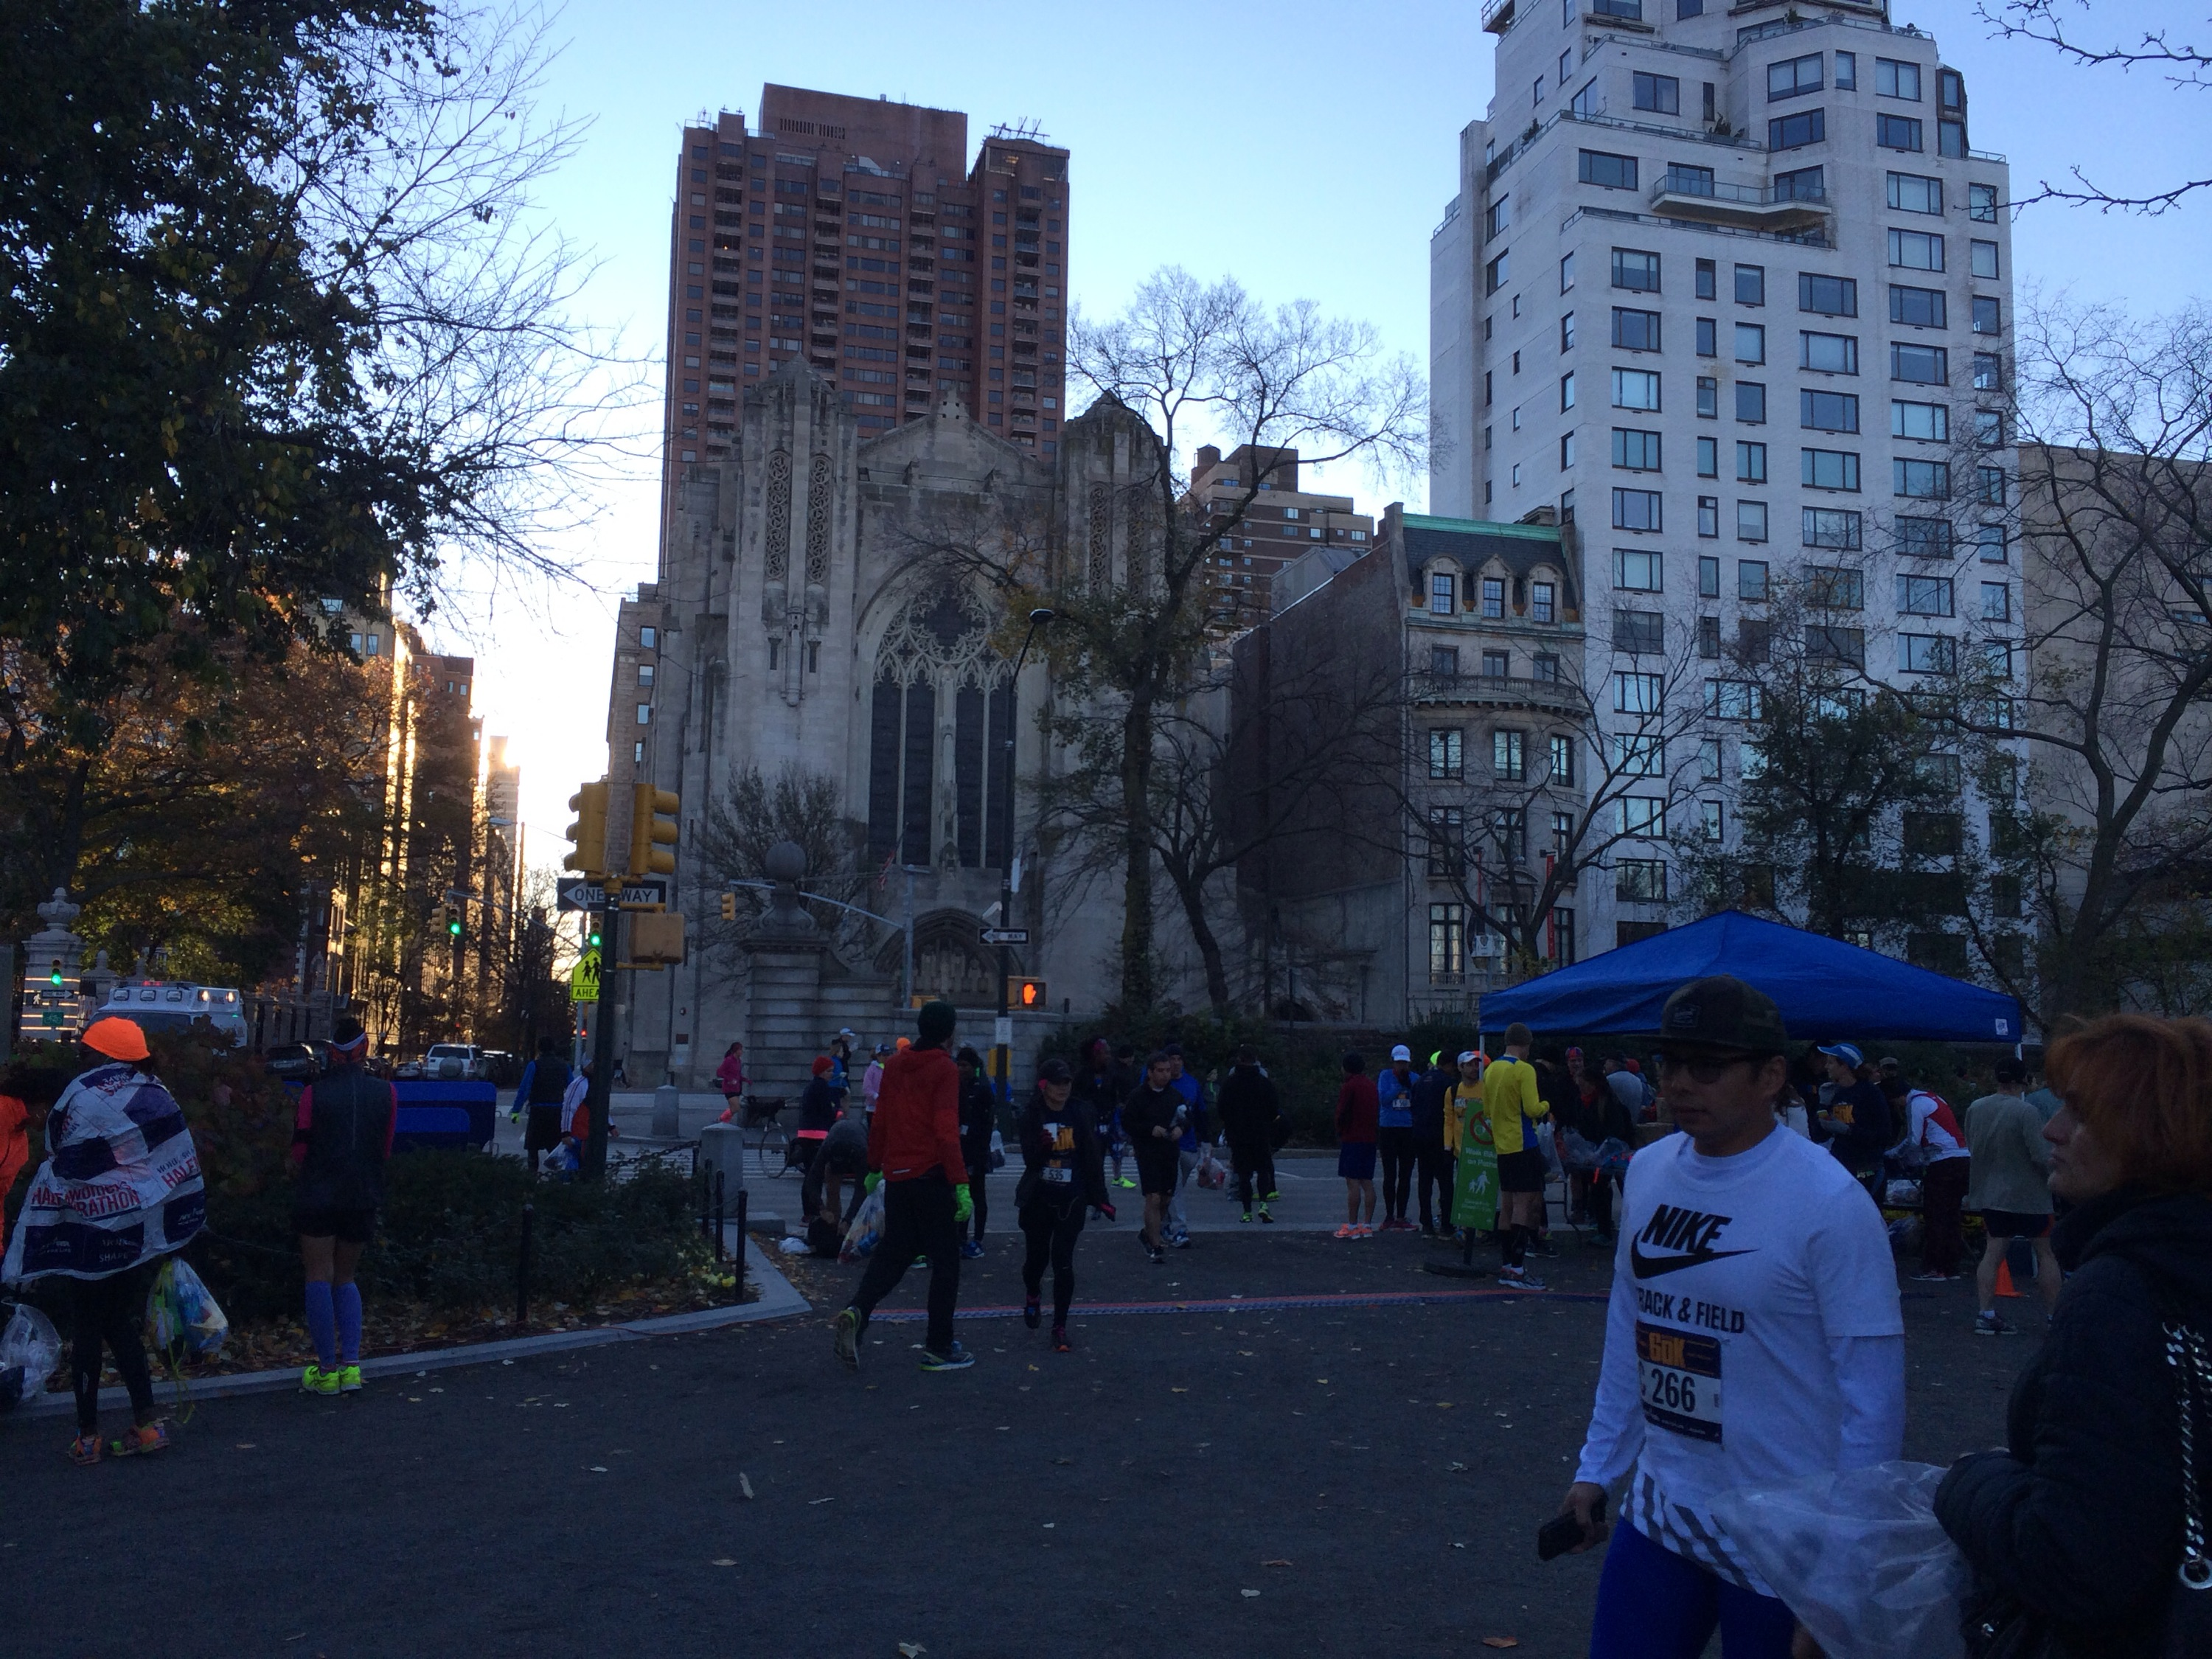 Runners getting ready for the NYC 60K, my first ultra race